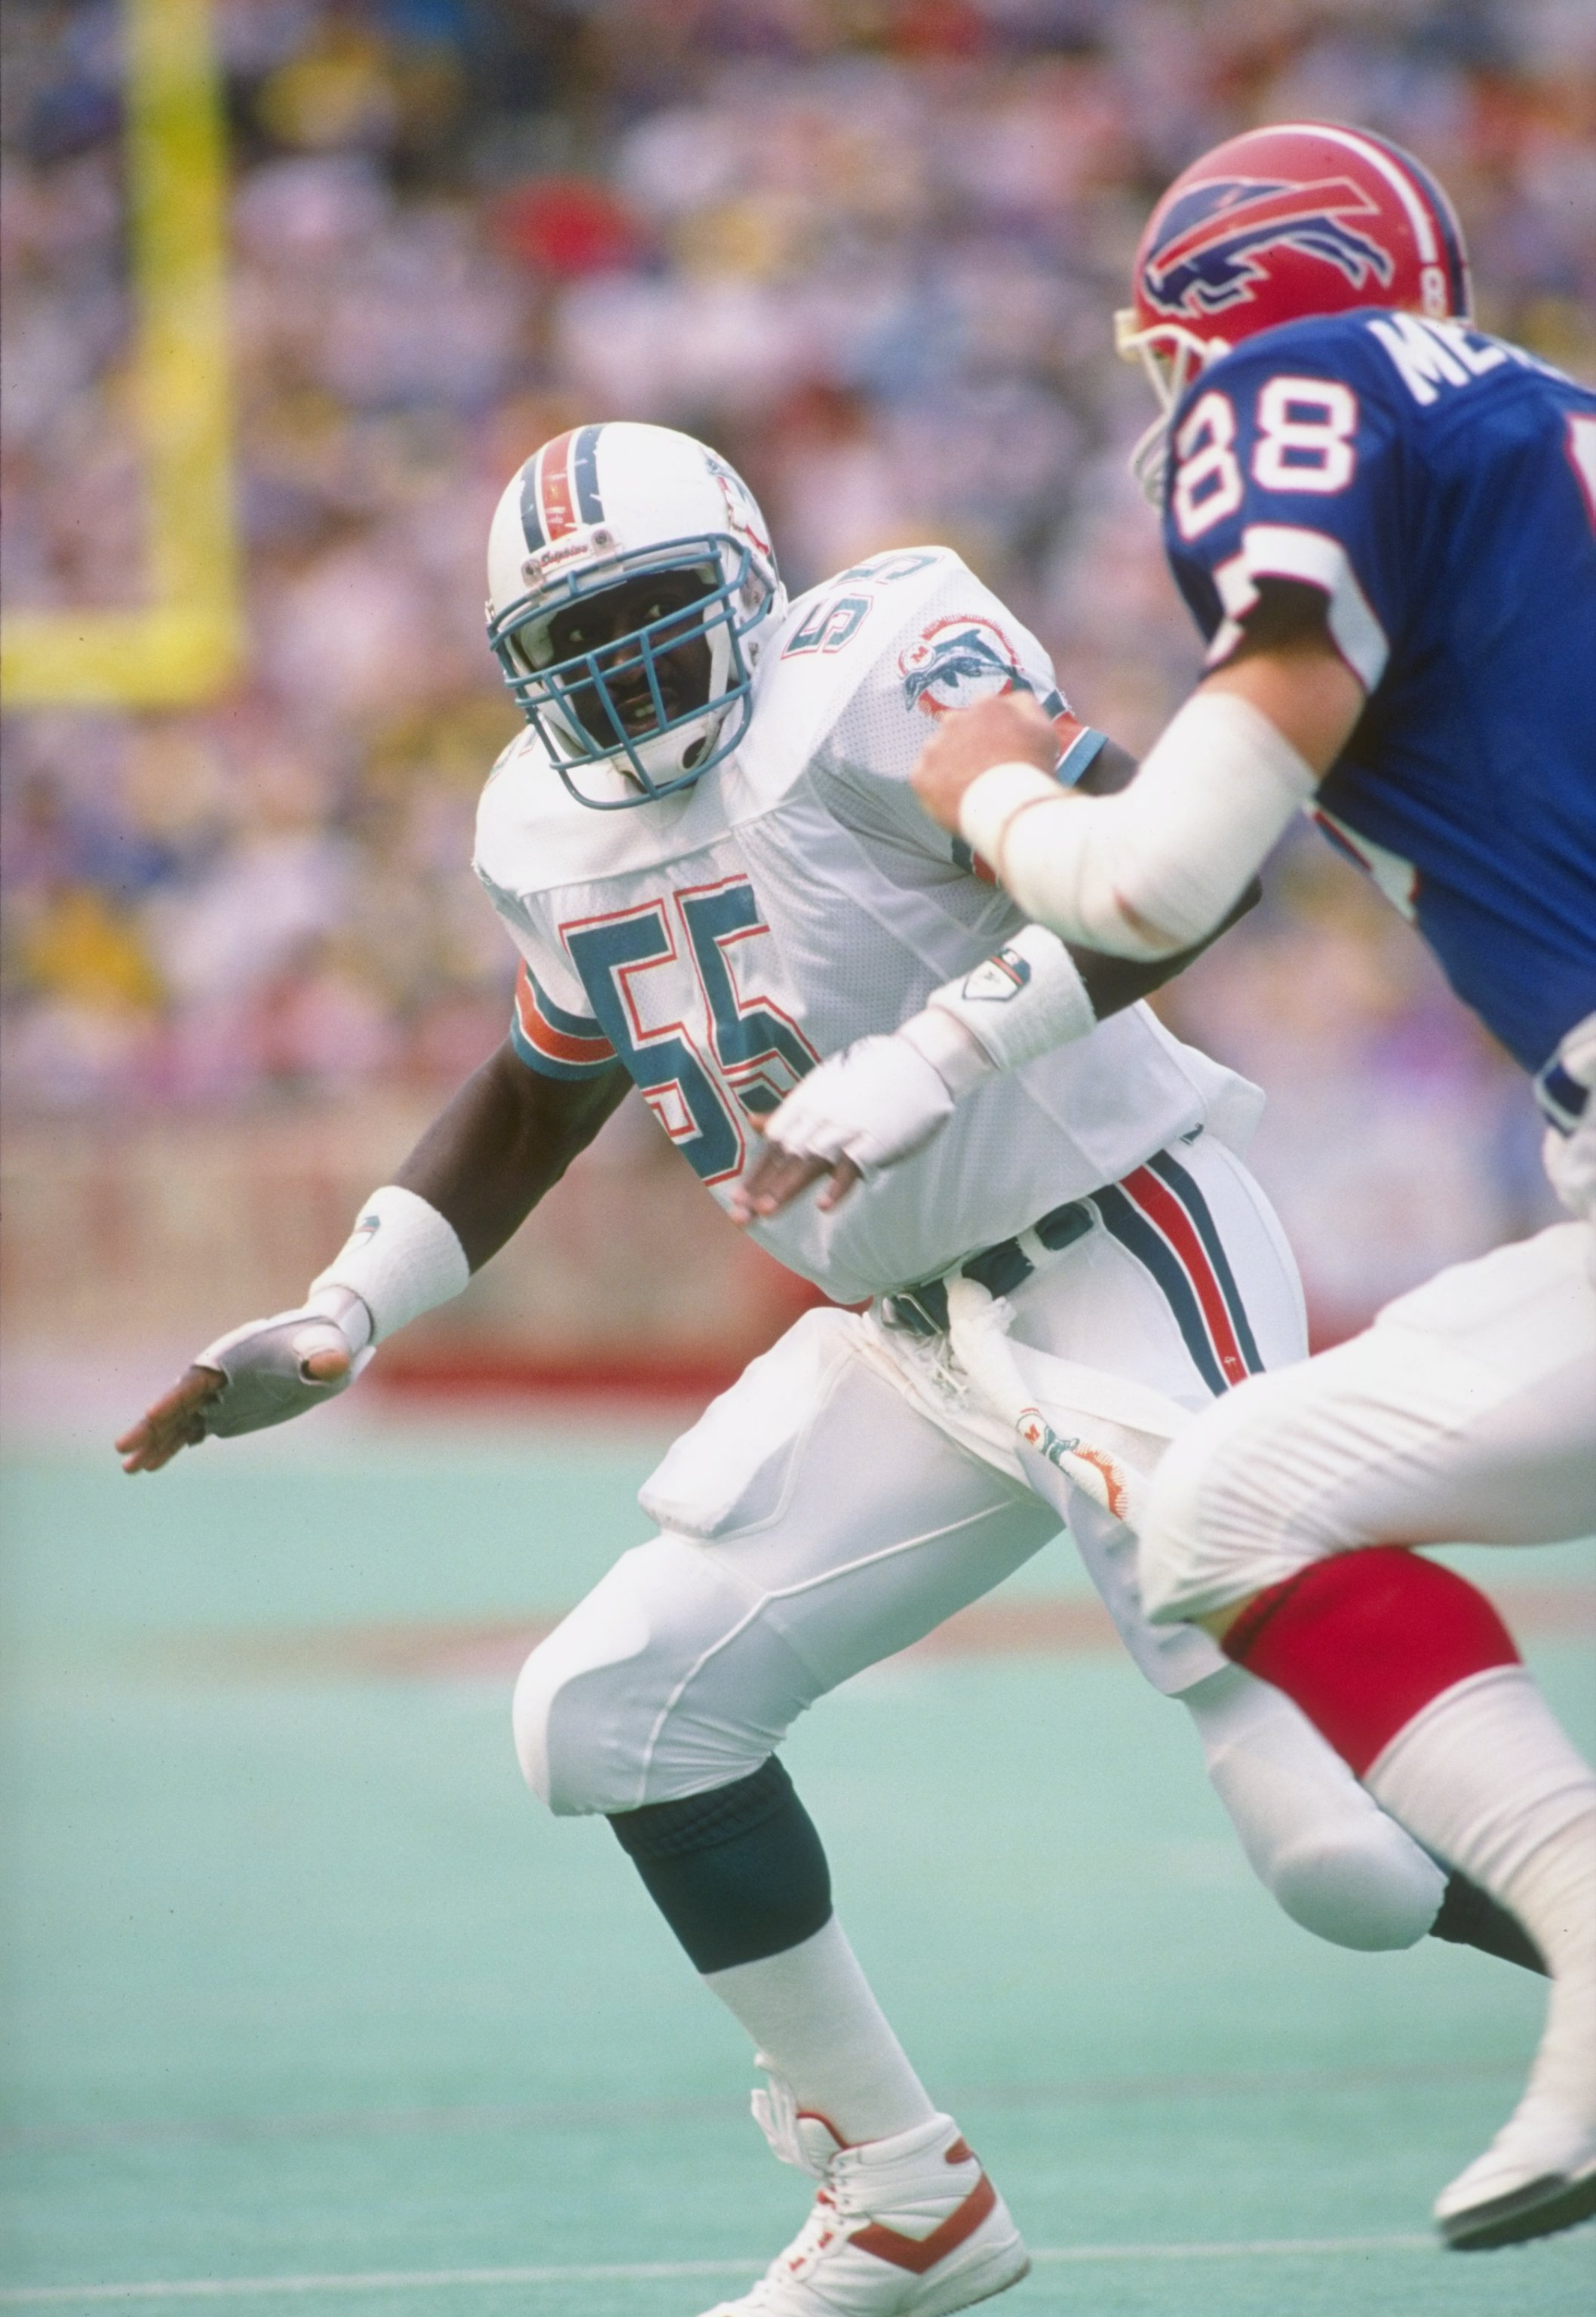 1 Sep 1991:  Linebacker Hugh Green of the Miami Dolphins (left) in action during a game against the Buffalo Bills at Rich Stadium in Orchard Park, New York.  The Bills won the game 35-31. Mandatory Credit: Rick Stewart  /Allsport